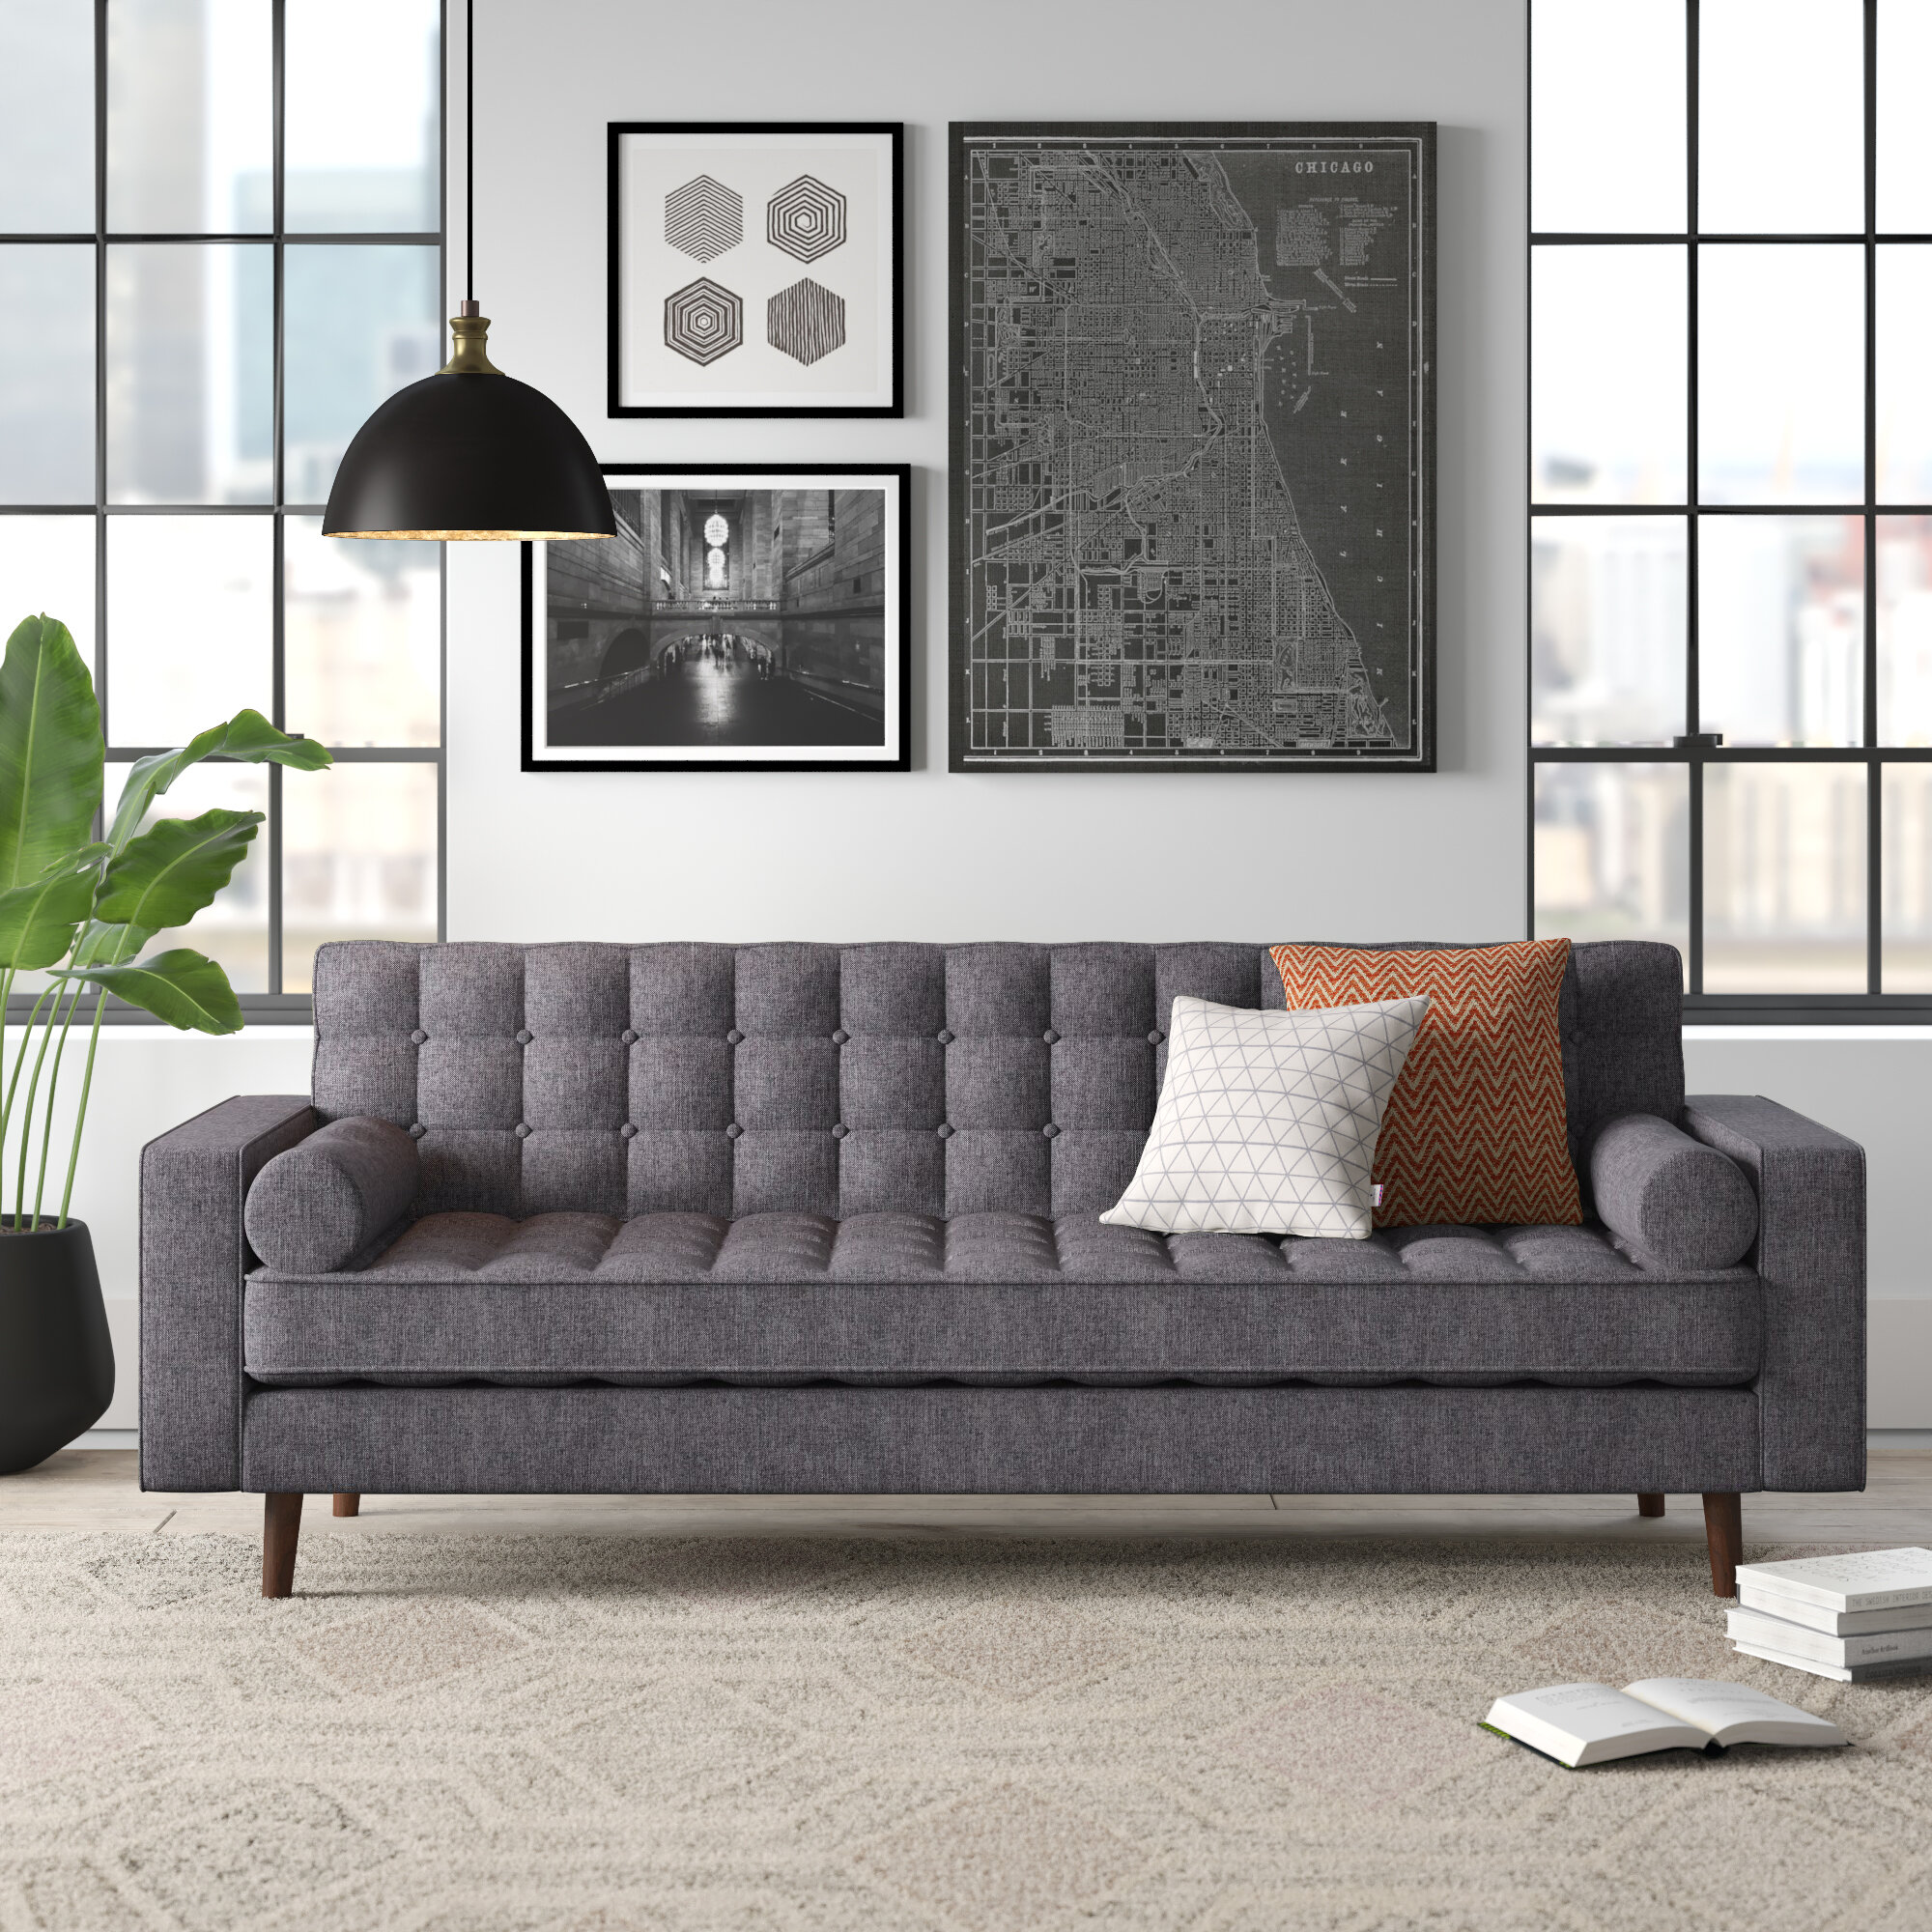 collins-85-square-arm-sofa